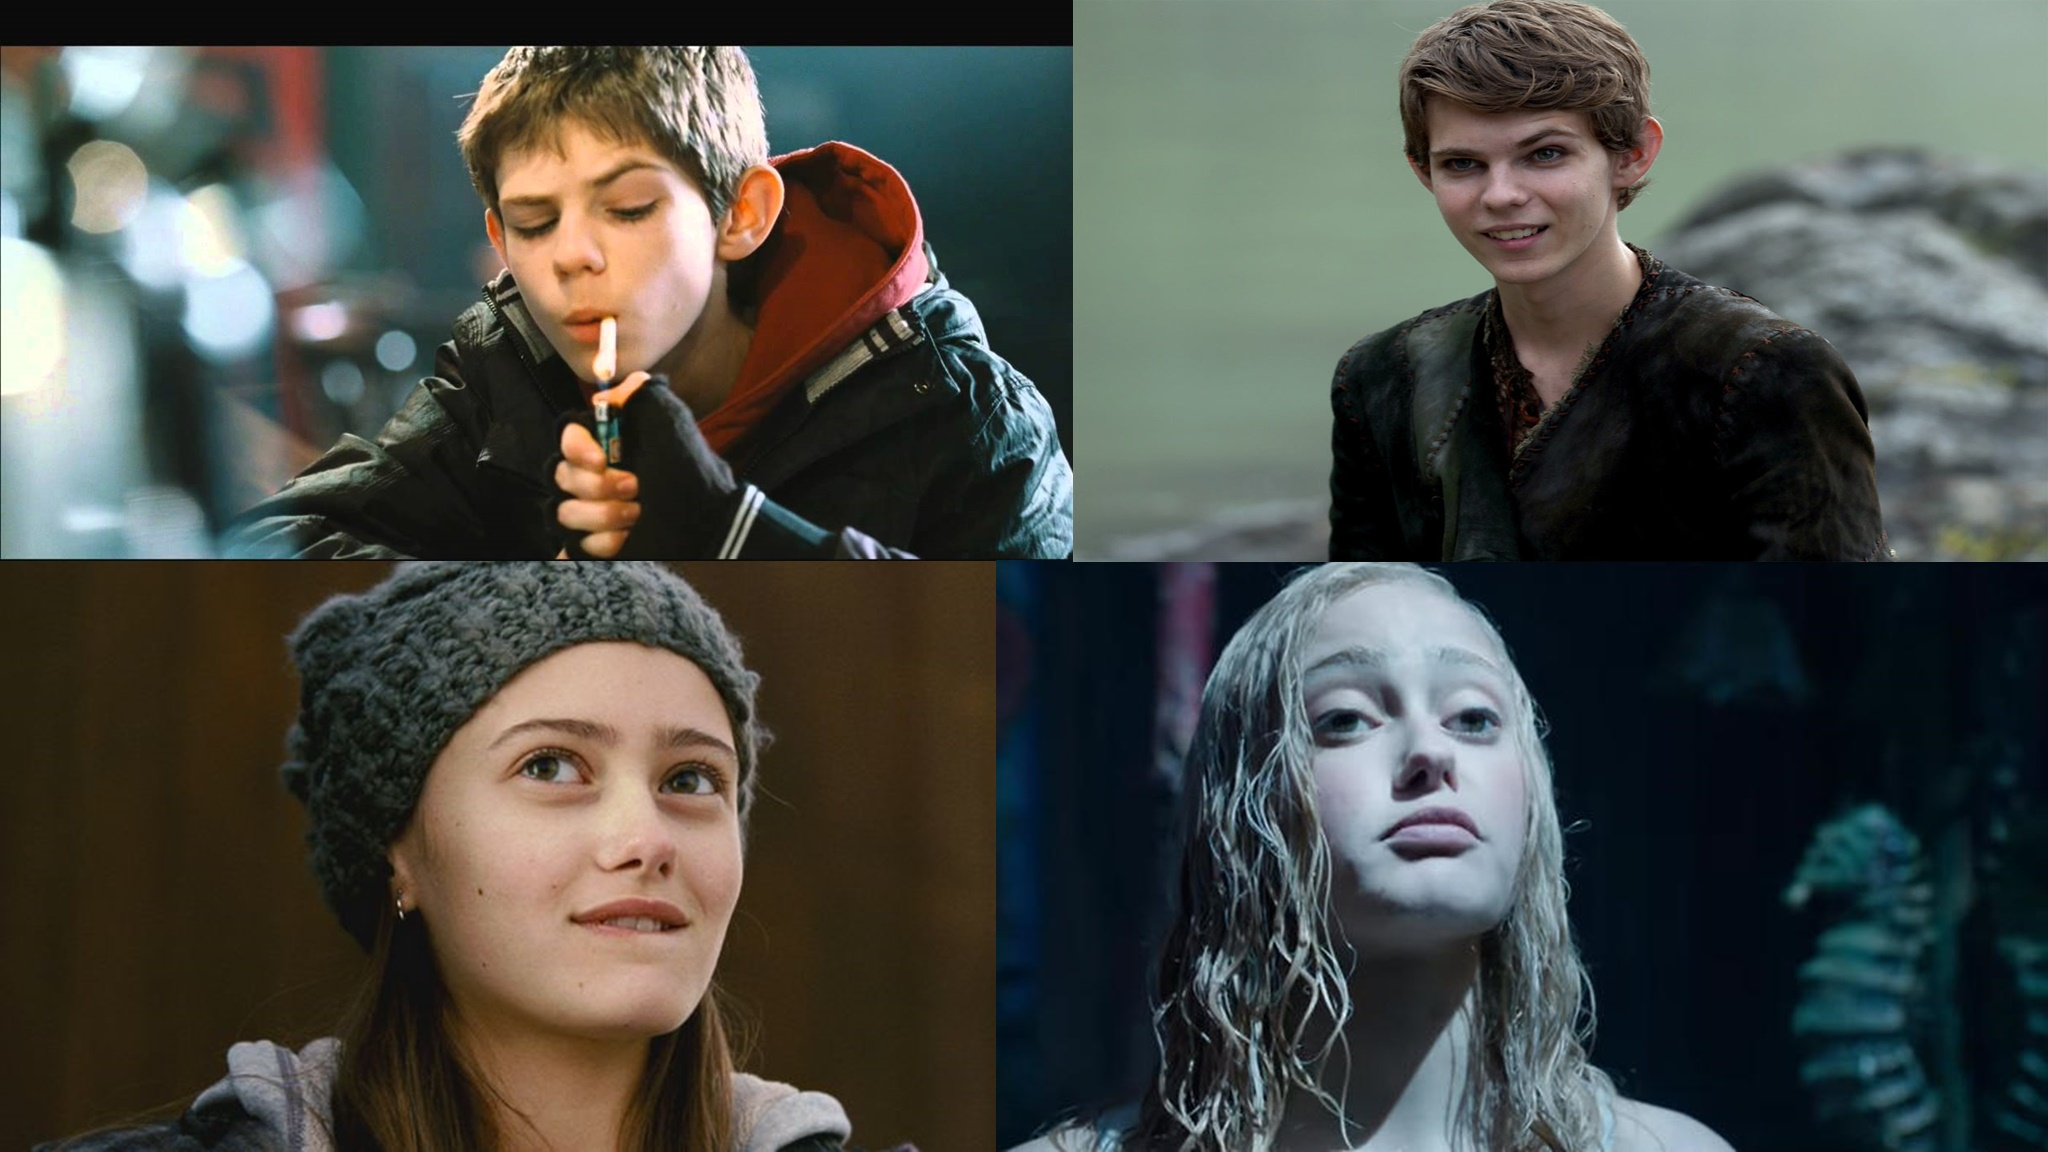 Where are Robbie Kay and Ella Purnell now?